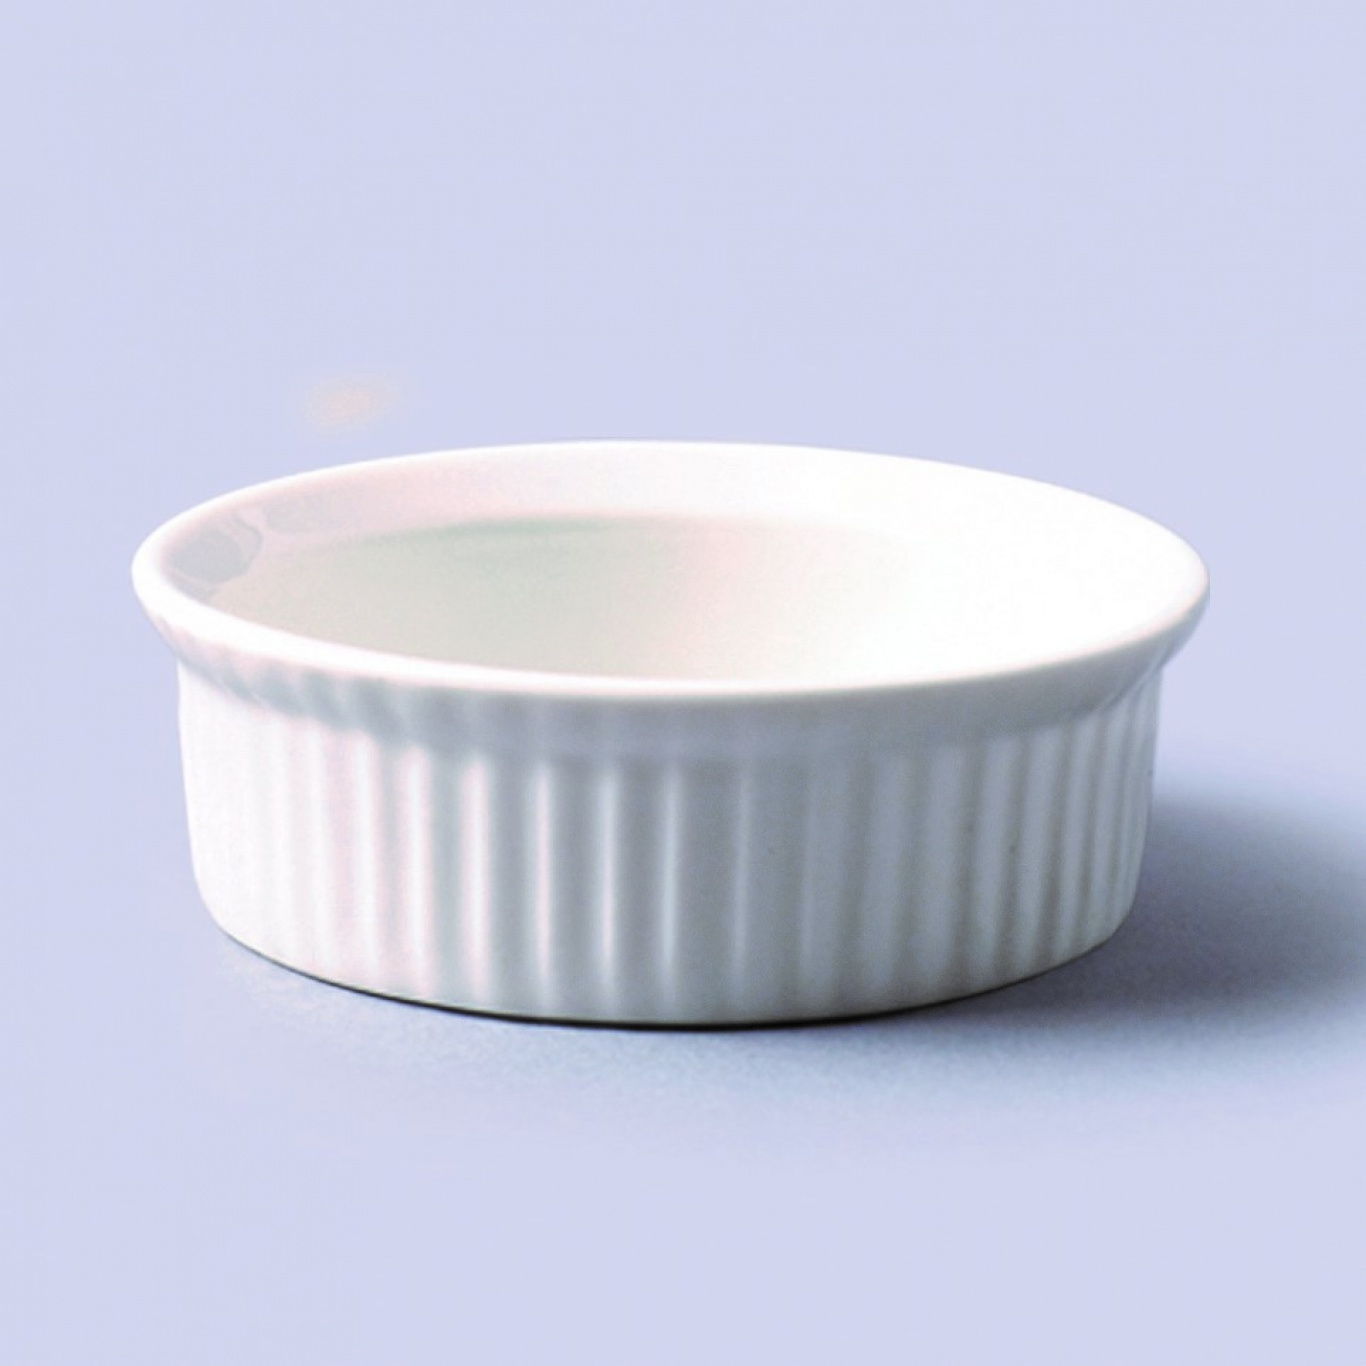 Image of Ramekin